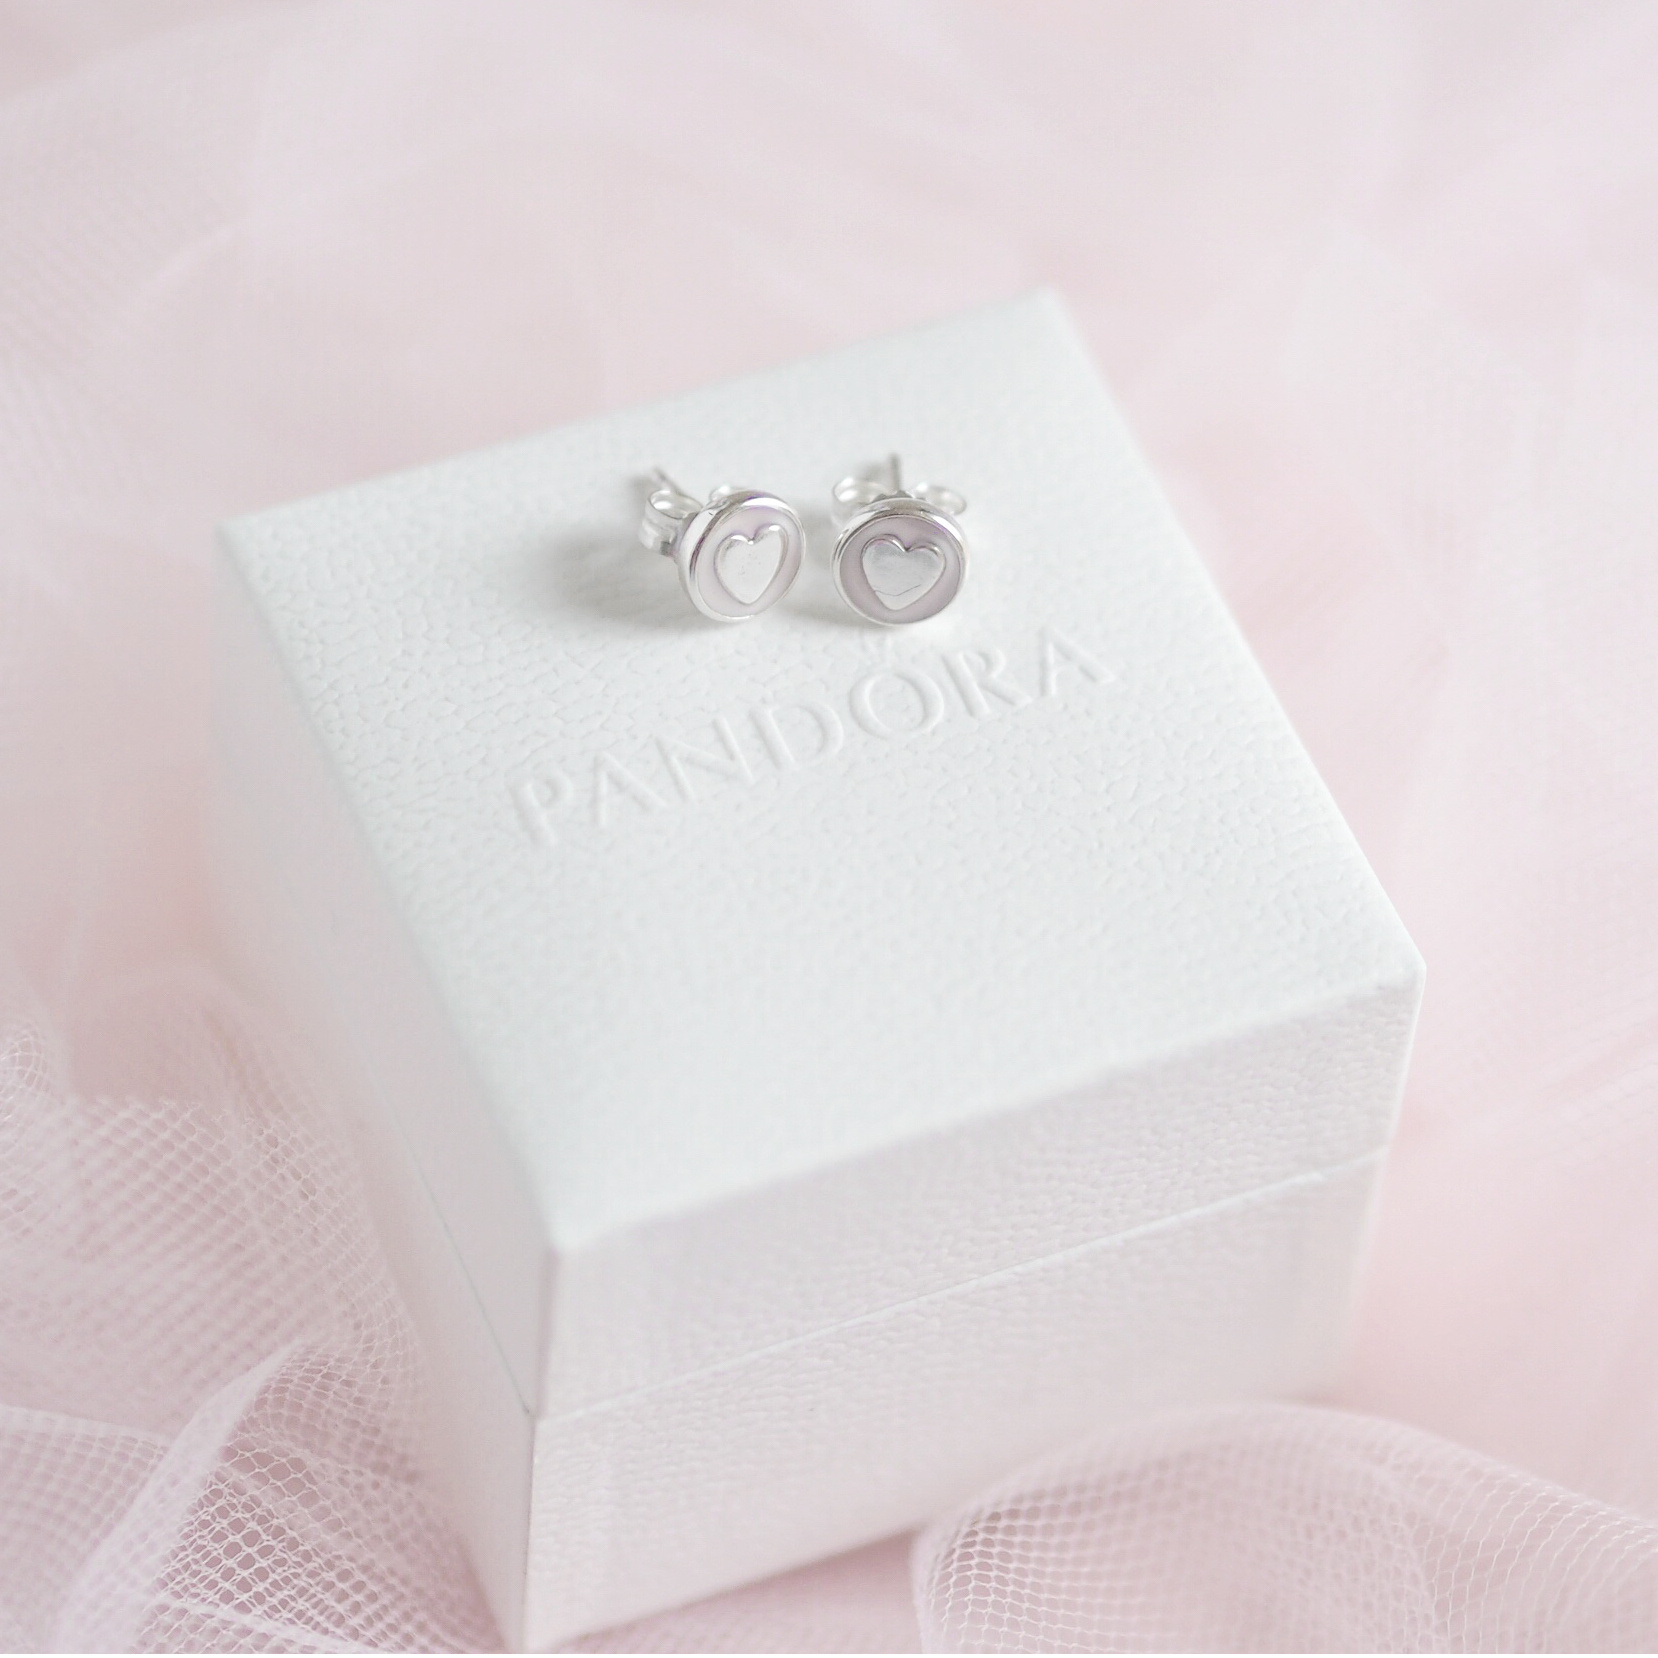 Pandora Sweet Statement Heart Earrings, The Lovely Things I Received For Christmas | Love Catherine